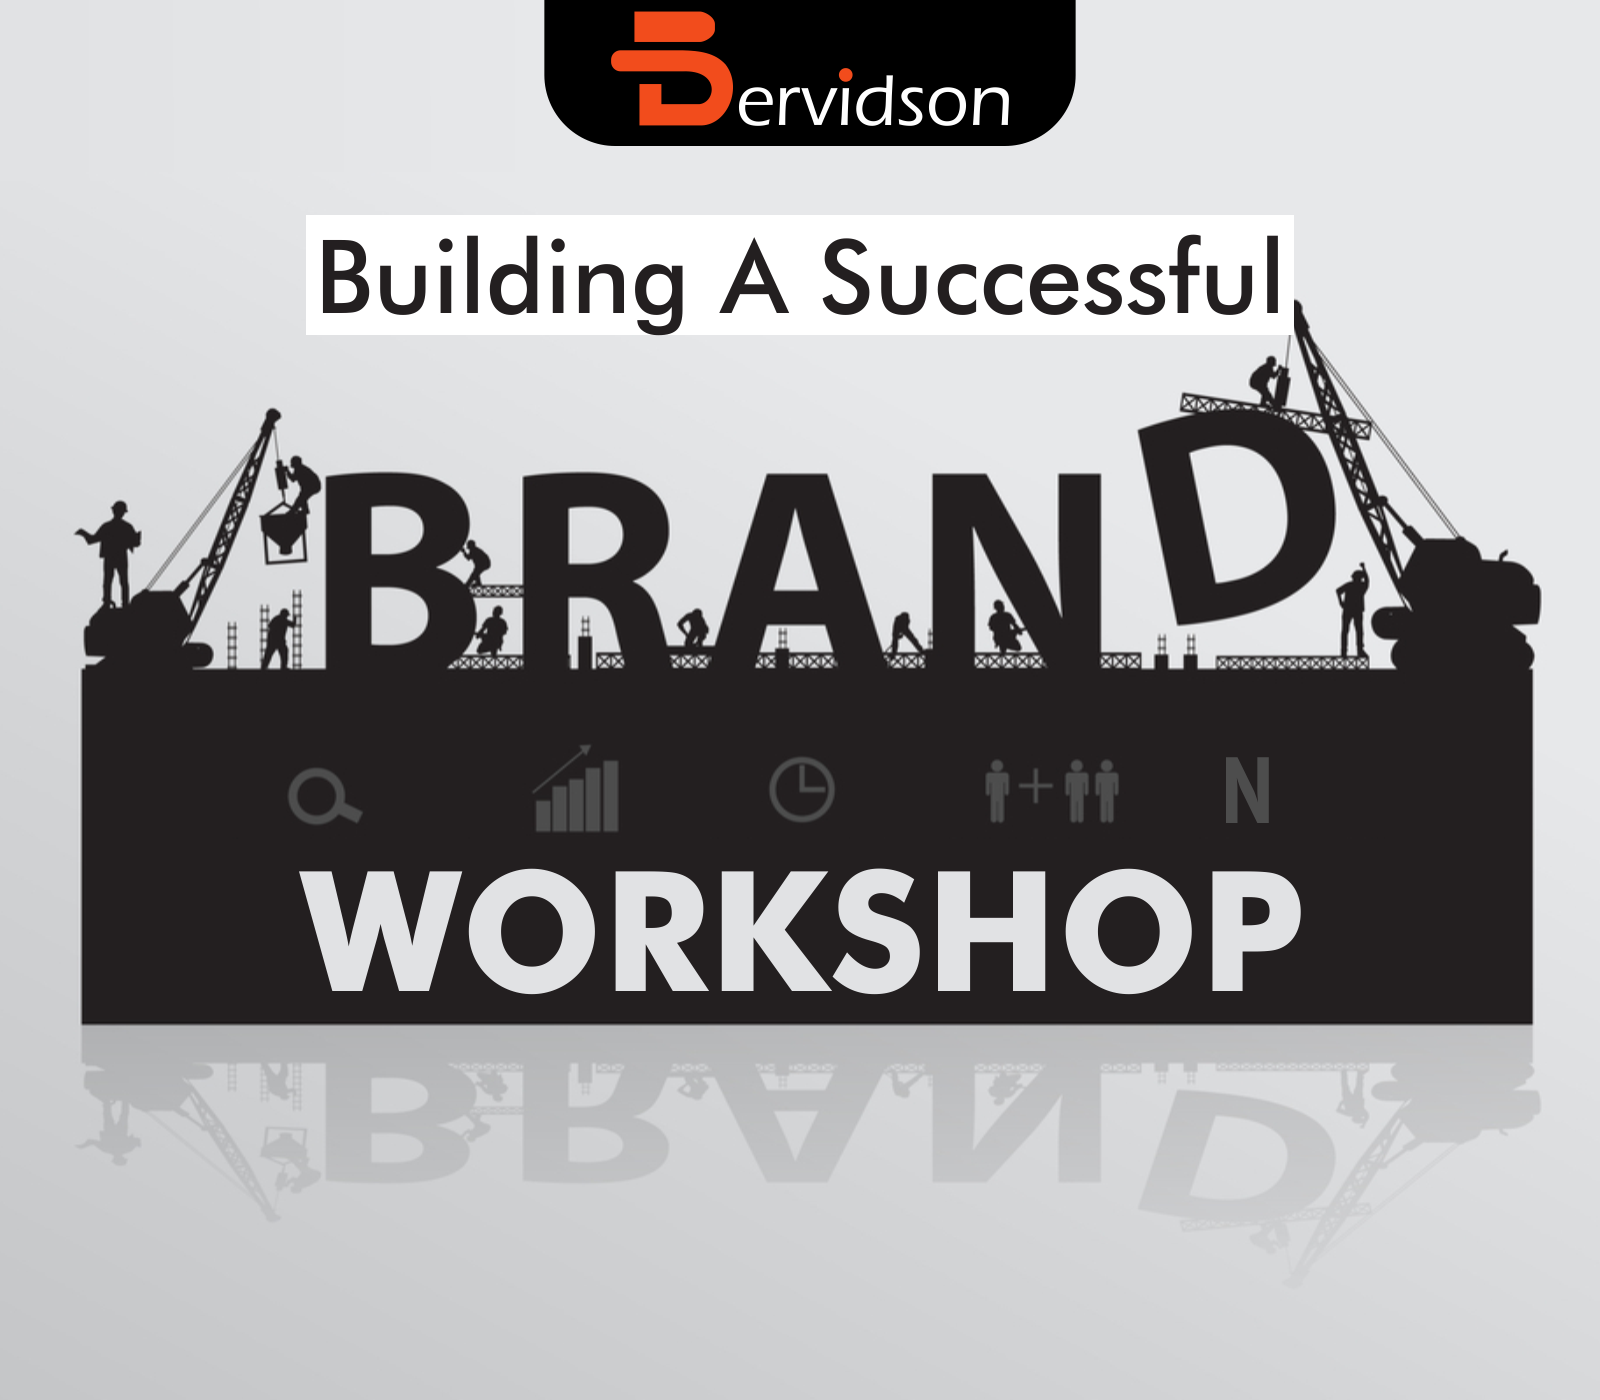 Building A Successful Brand Workshop